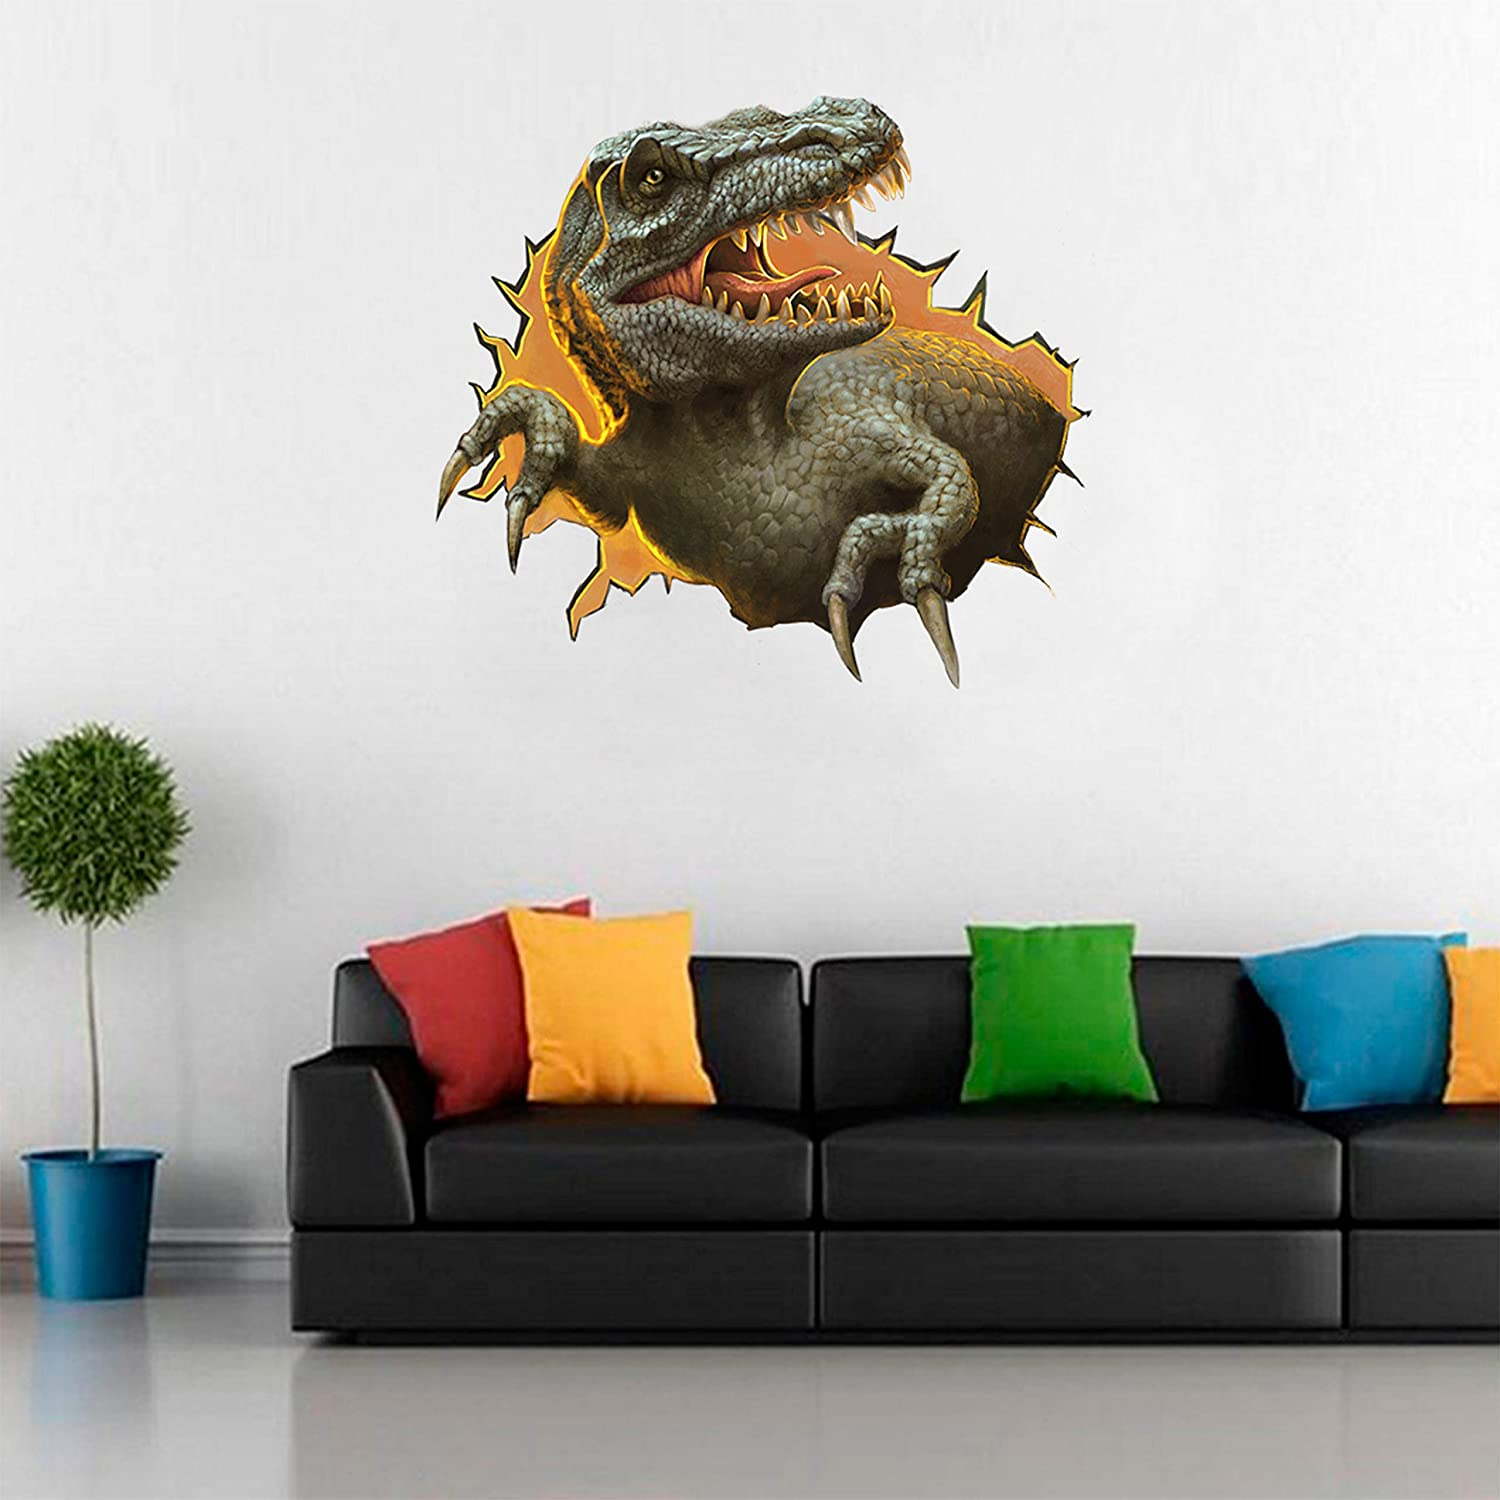 Peel /& Stick T-Rex Wall Sticker Dinosaur Wall Decals for Boys Room 3ftx3ft Shanghai Youte Banner Print